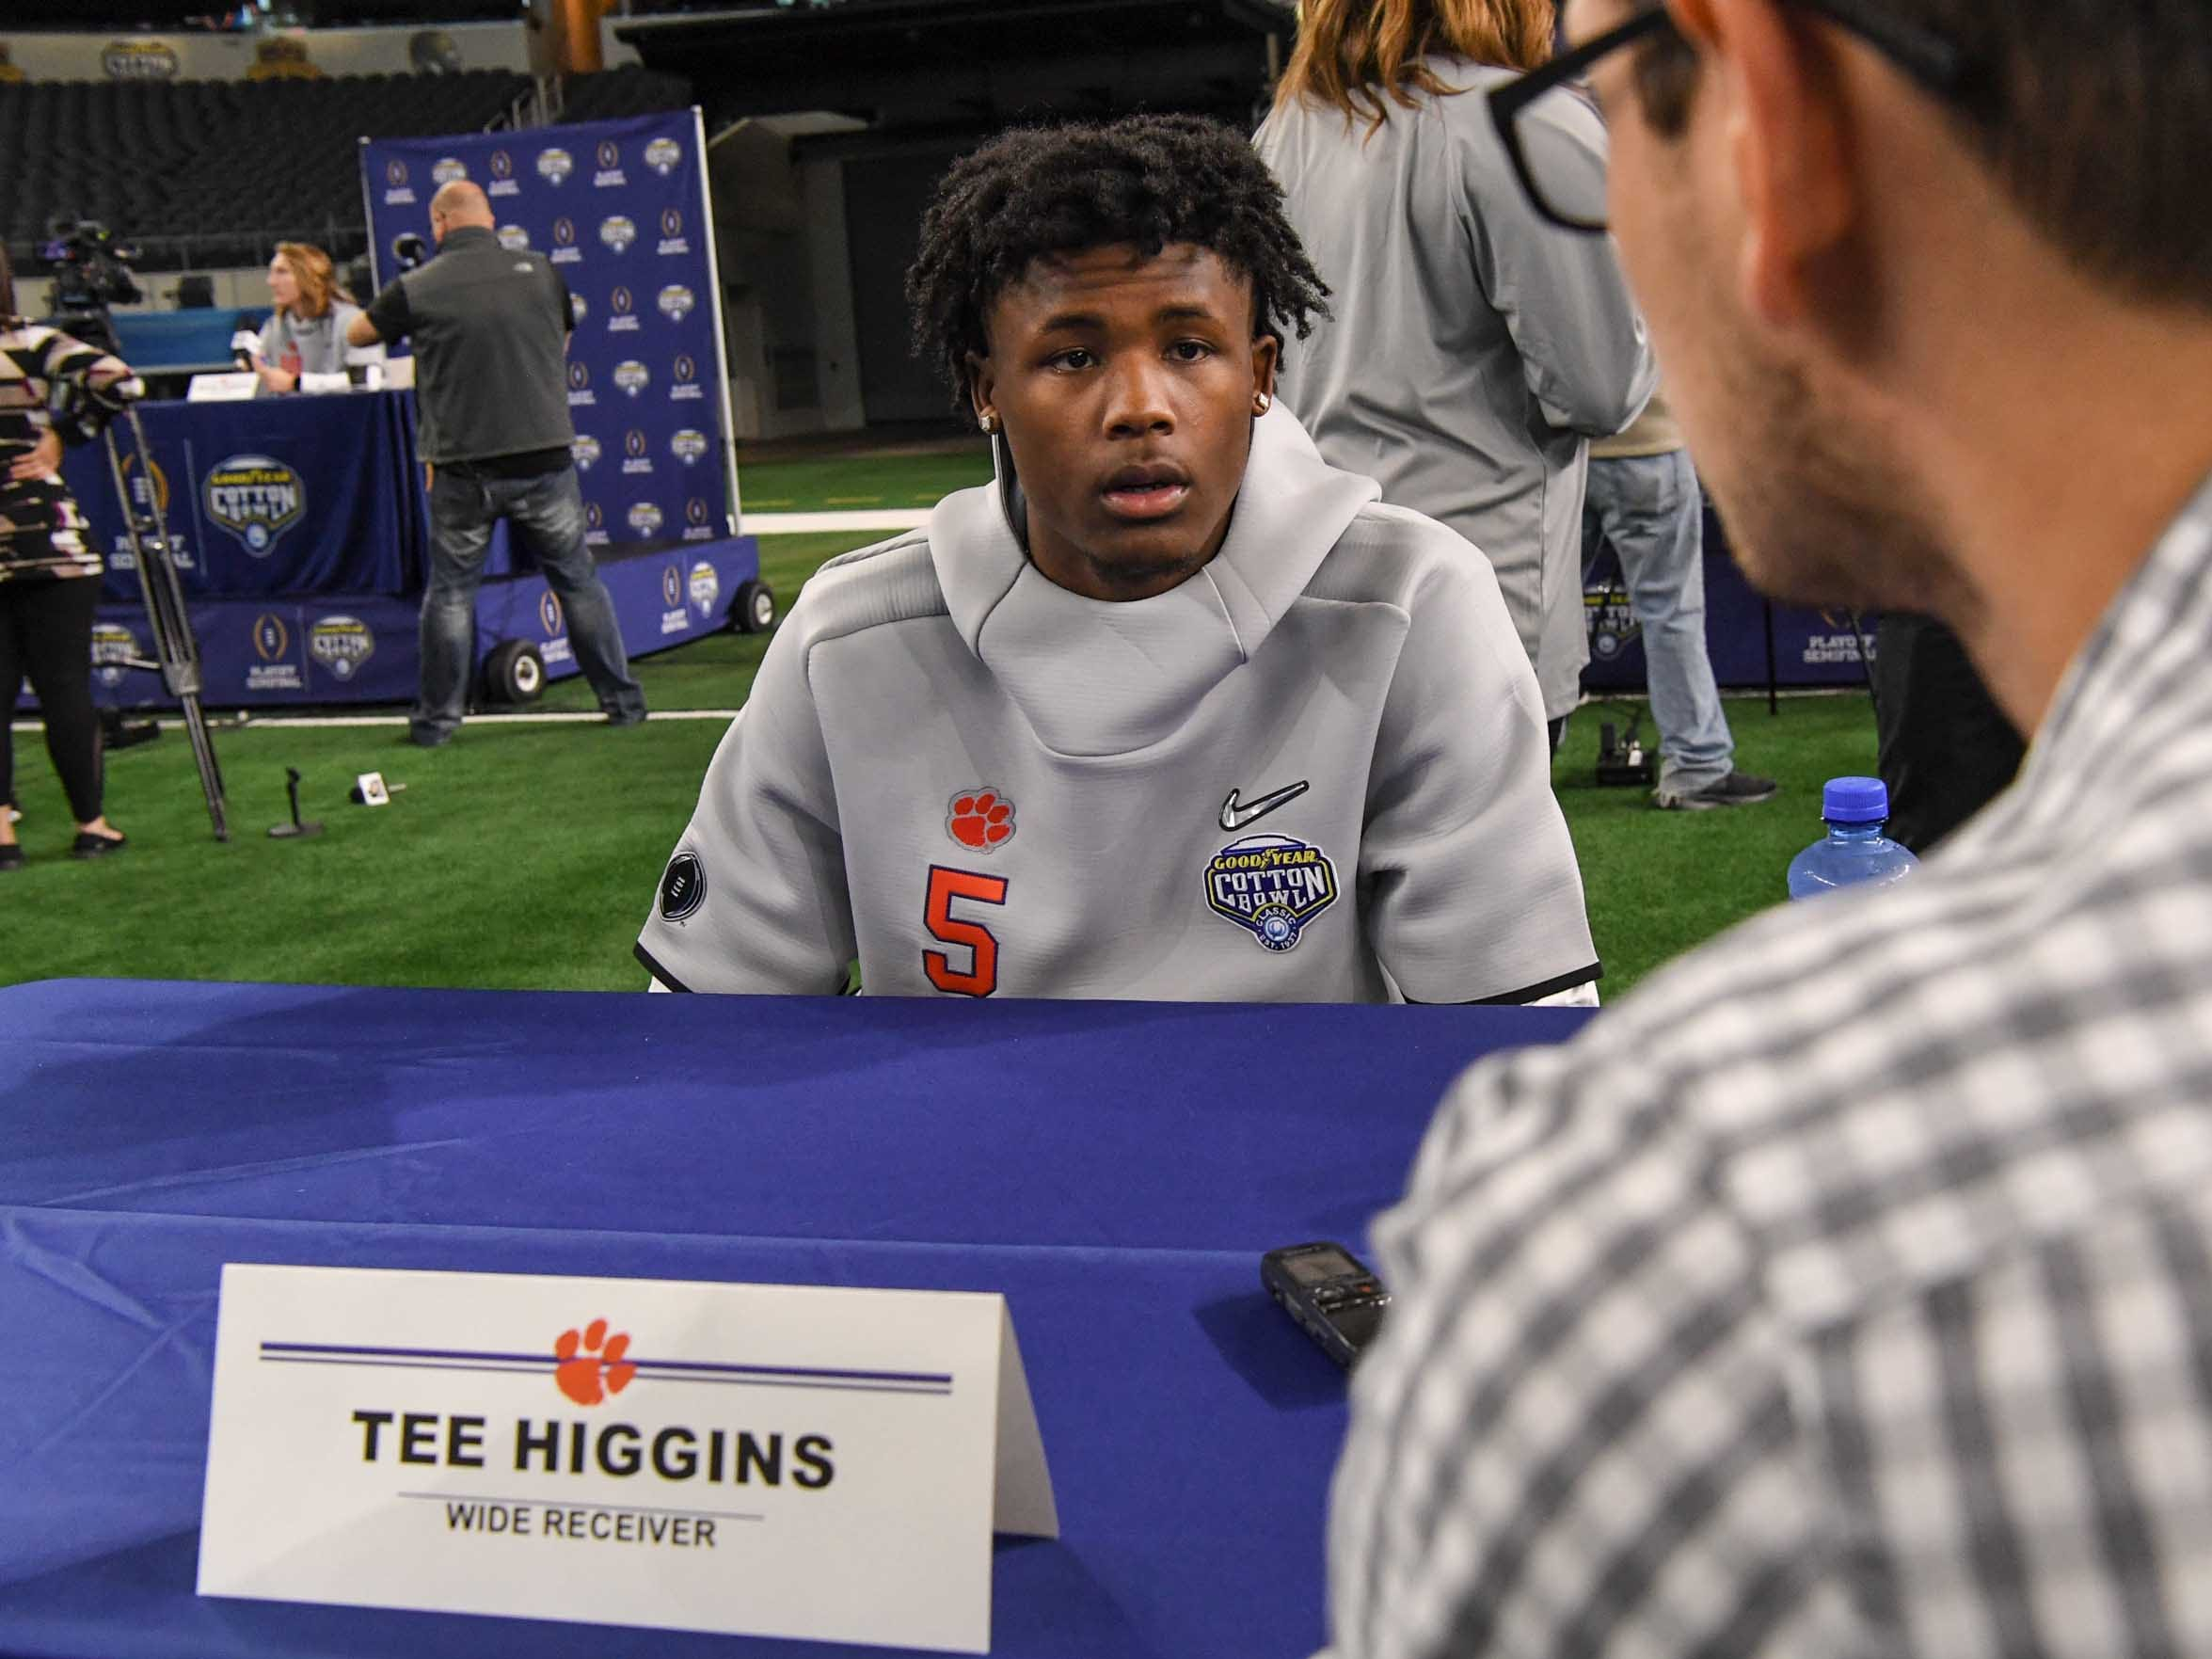 Clemson wide receiver Tee Higgins during Media Day for Clemson and Notre Dame at the AT&T Stadium in Dallas December 27, 2018.